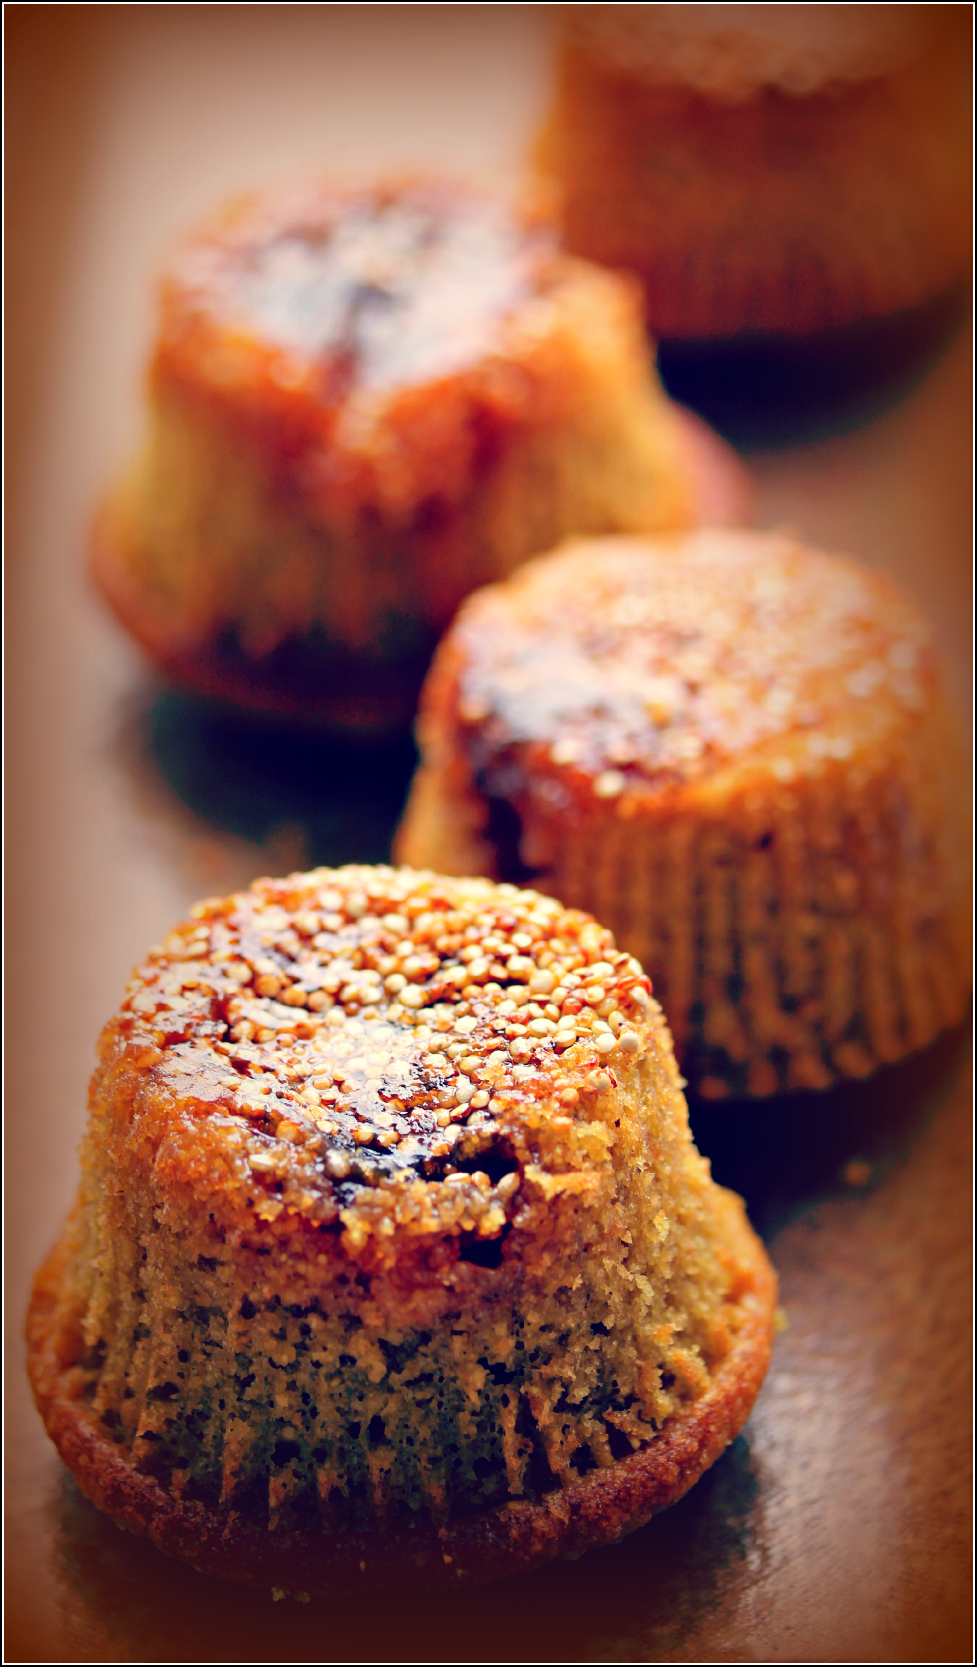 Four Quinoa and Plum Mini-cakes by Dena T Bray©